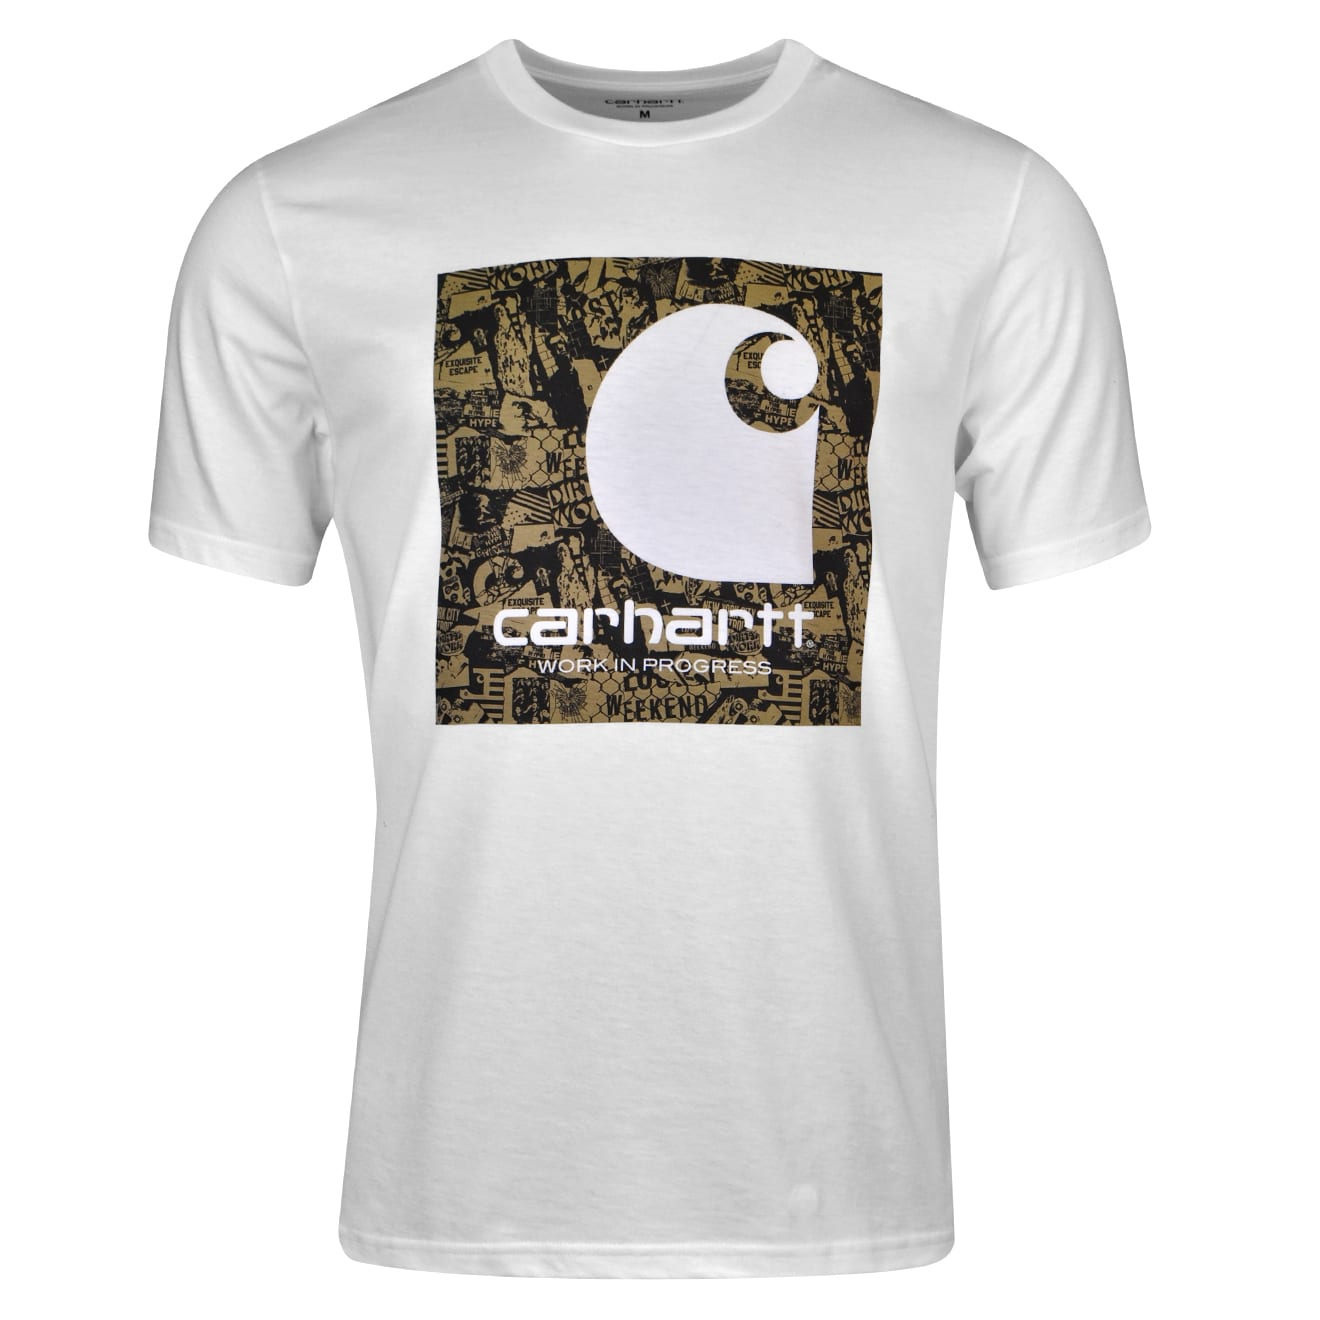 Carhartt c collage t shirt the sporting lodge for Carhartt tee shirts sale